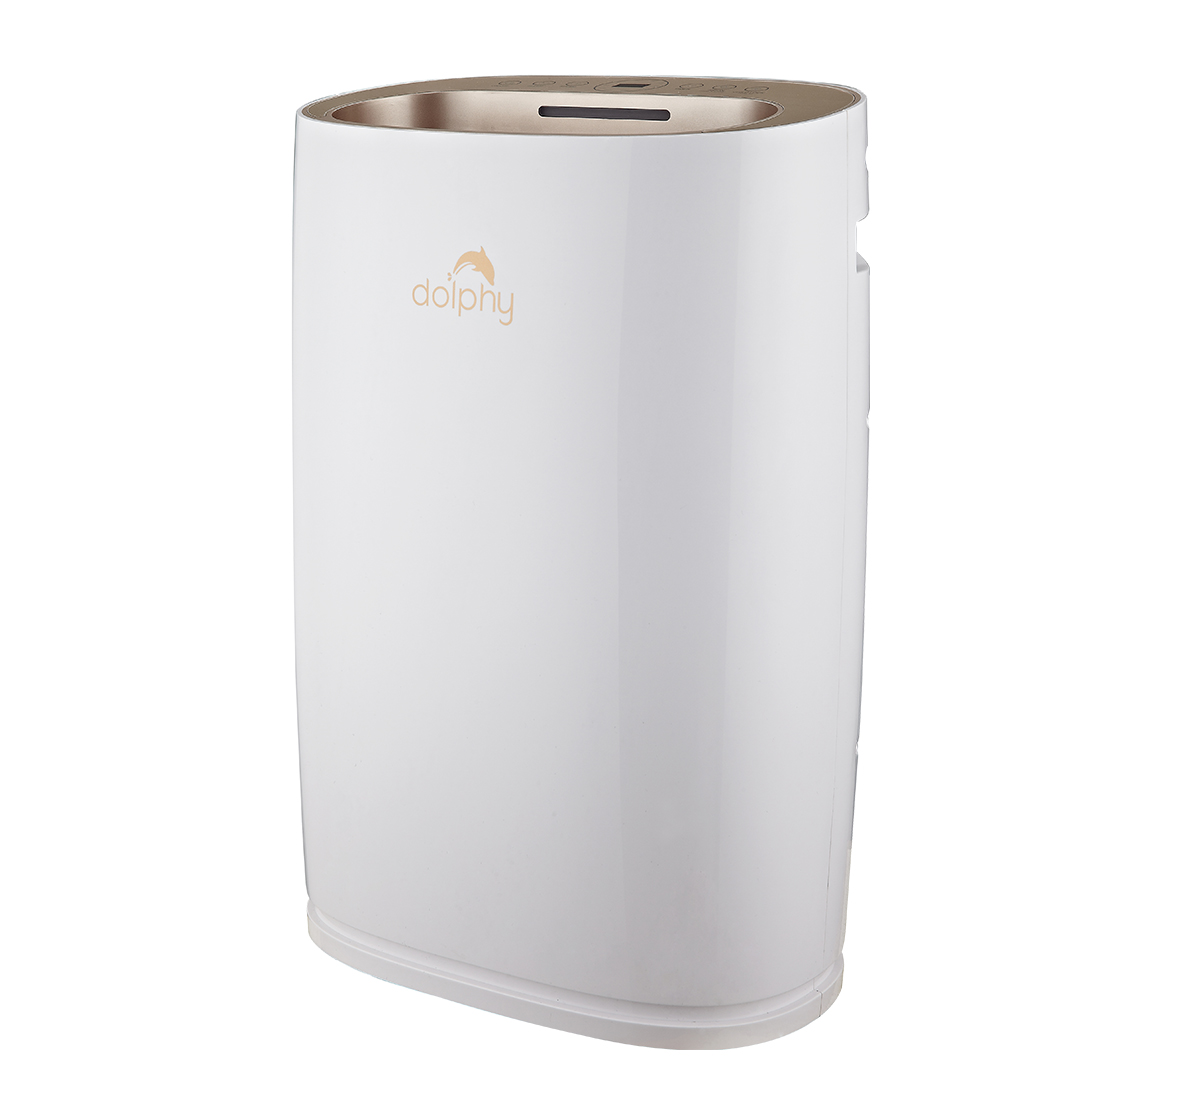 Buy Air Purifier With Hepa Filter 75 W From Dolphy At